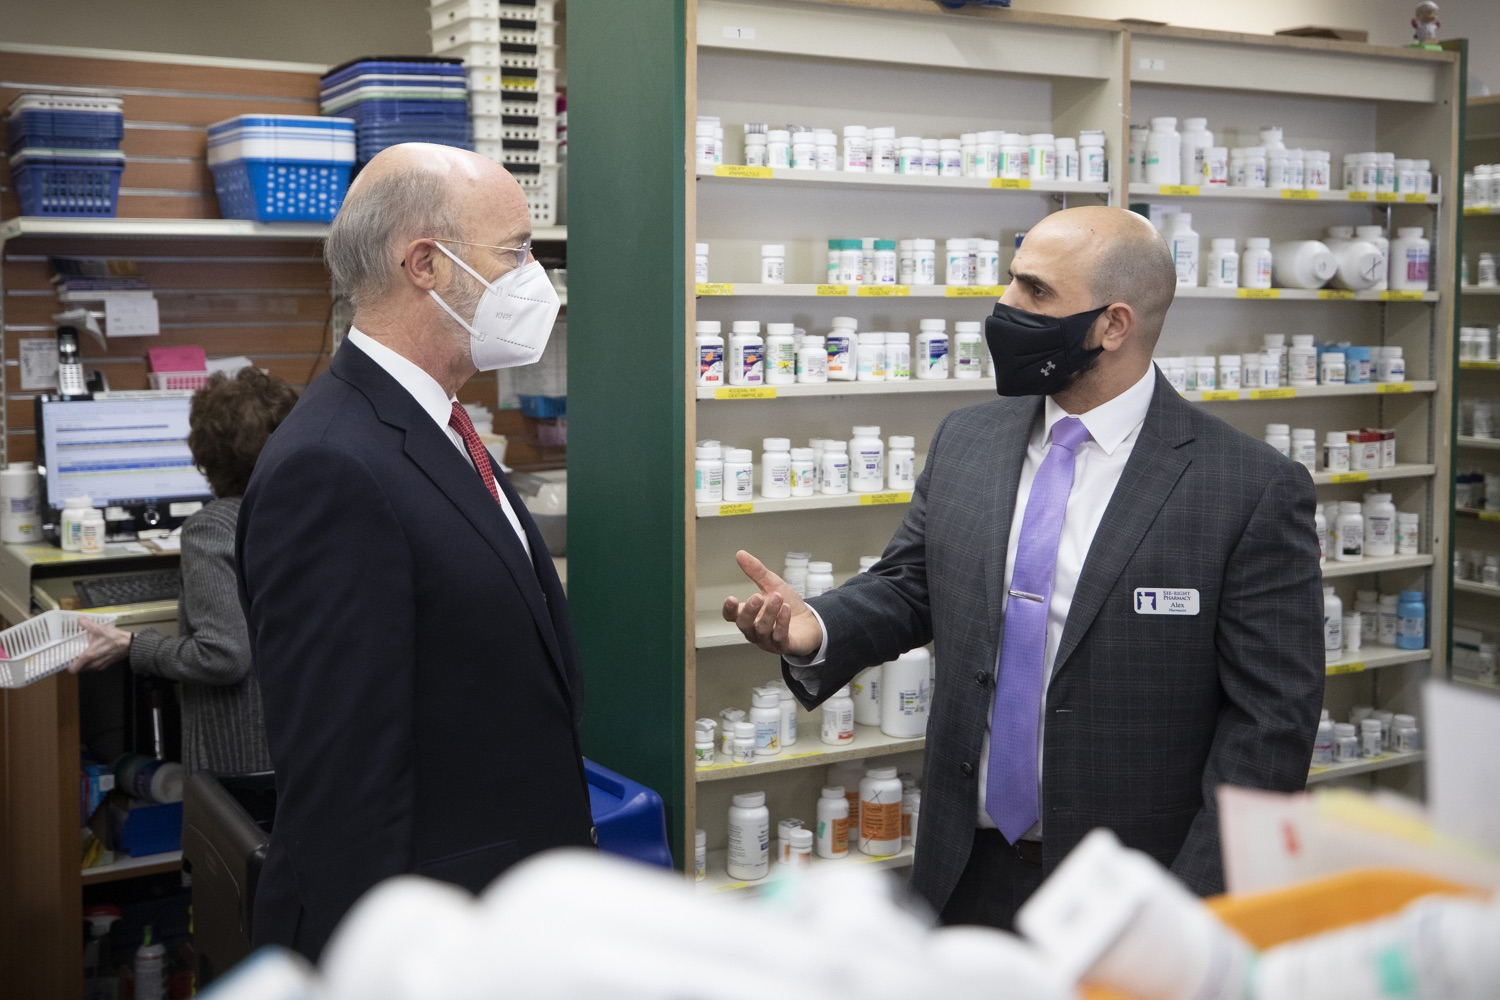 Gov. Tom Wolf, left, talks with pharmacist Alex Quaddoumi of See-Rite Pharmacy in Harrisburg before a press briefing outside the pharmacy on Thursday, April 22, 2021. (Source: Pa.gov.)